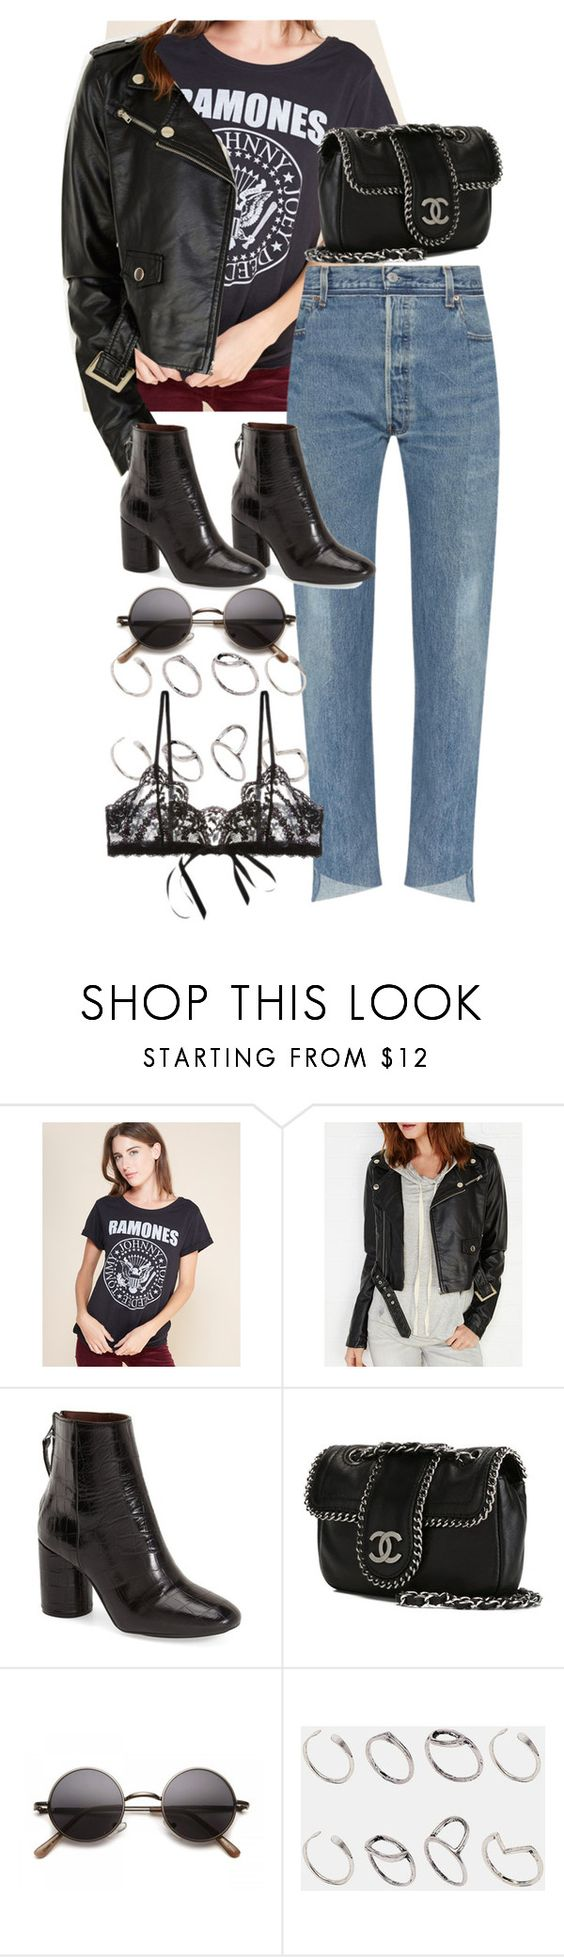 """""""Untitled #9859"""" by nikka-phillips ❤ liked on Polyvore featuring Bravado, Wet Seal, Topshop, Chanel, ASOS and Hanky Panky"""